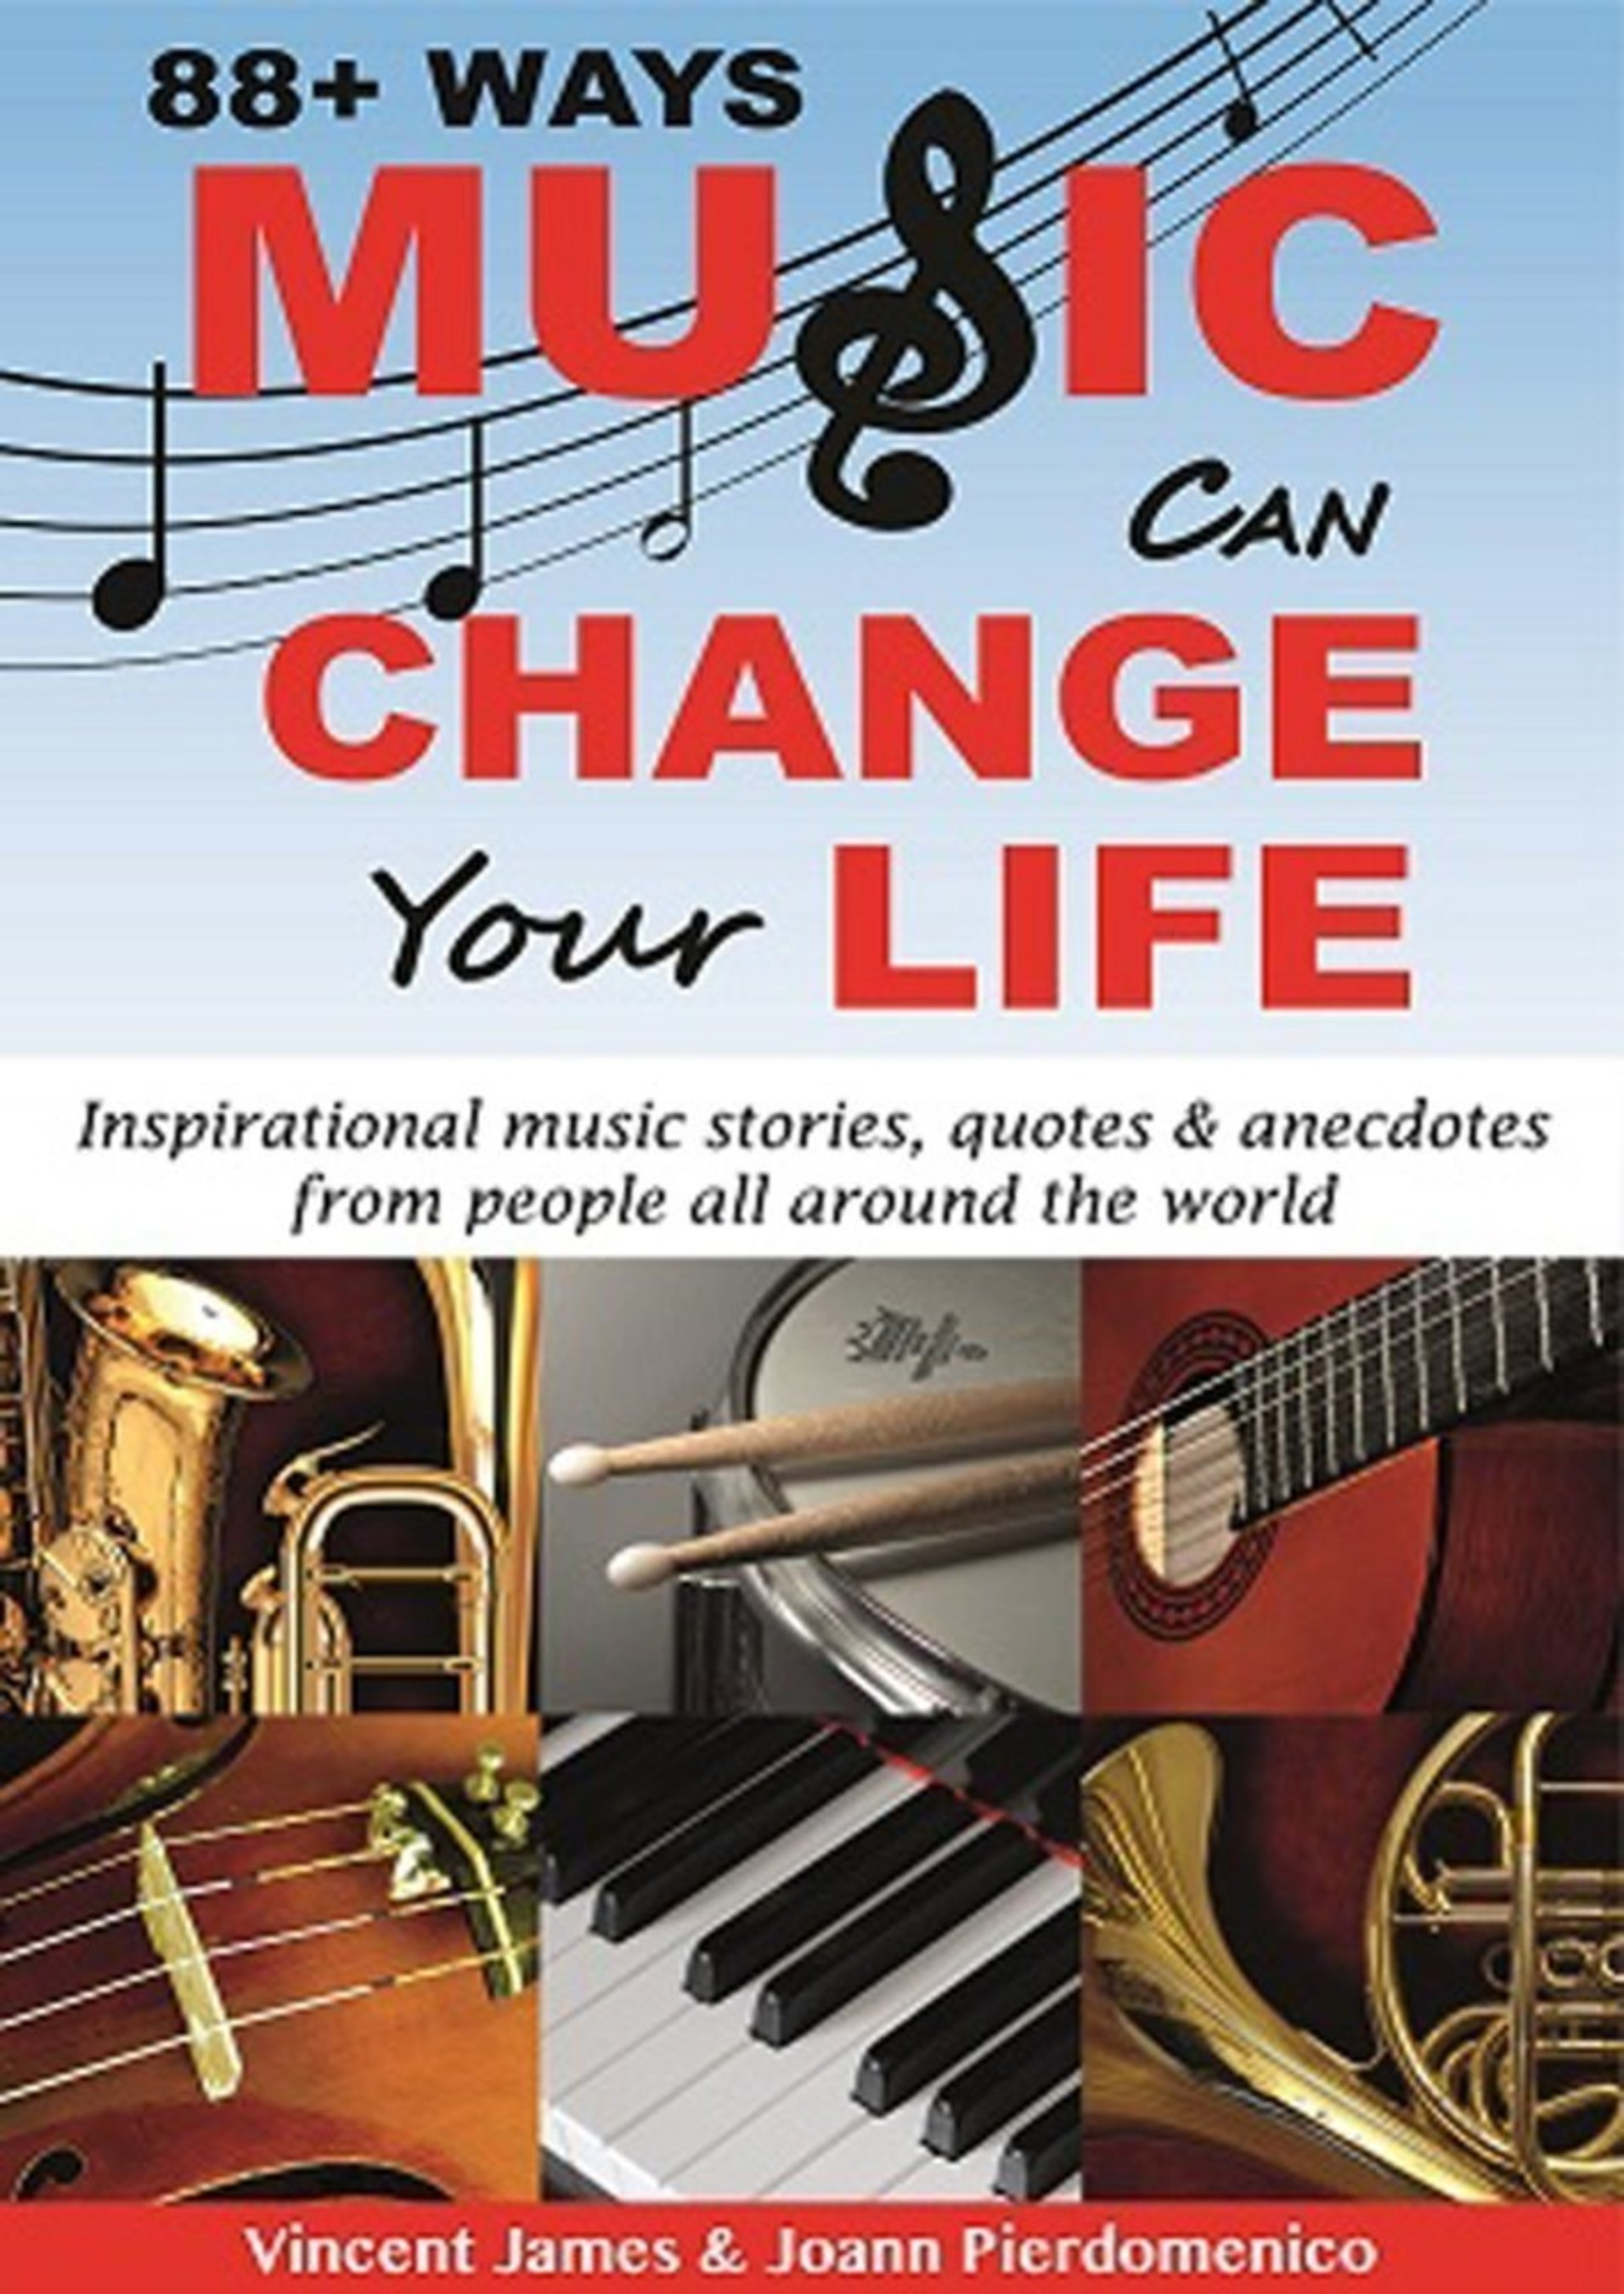 '88+ Ways Music Can Change Your Life' Endorsed by Bestselling Author Jack Canfield